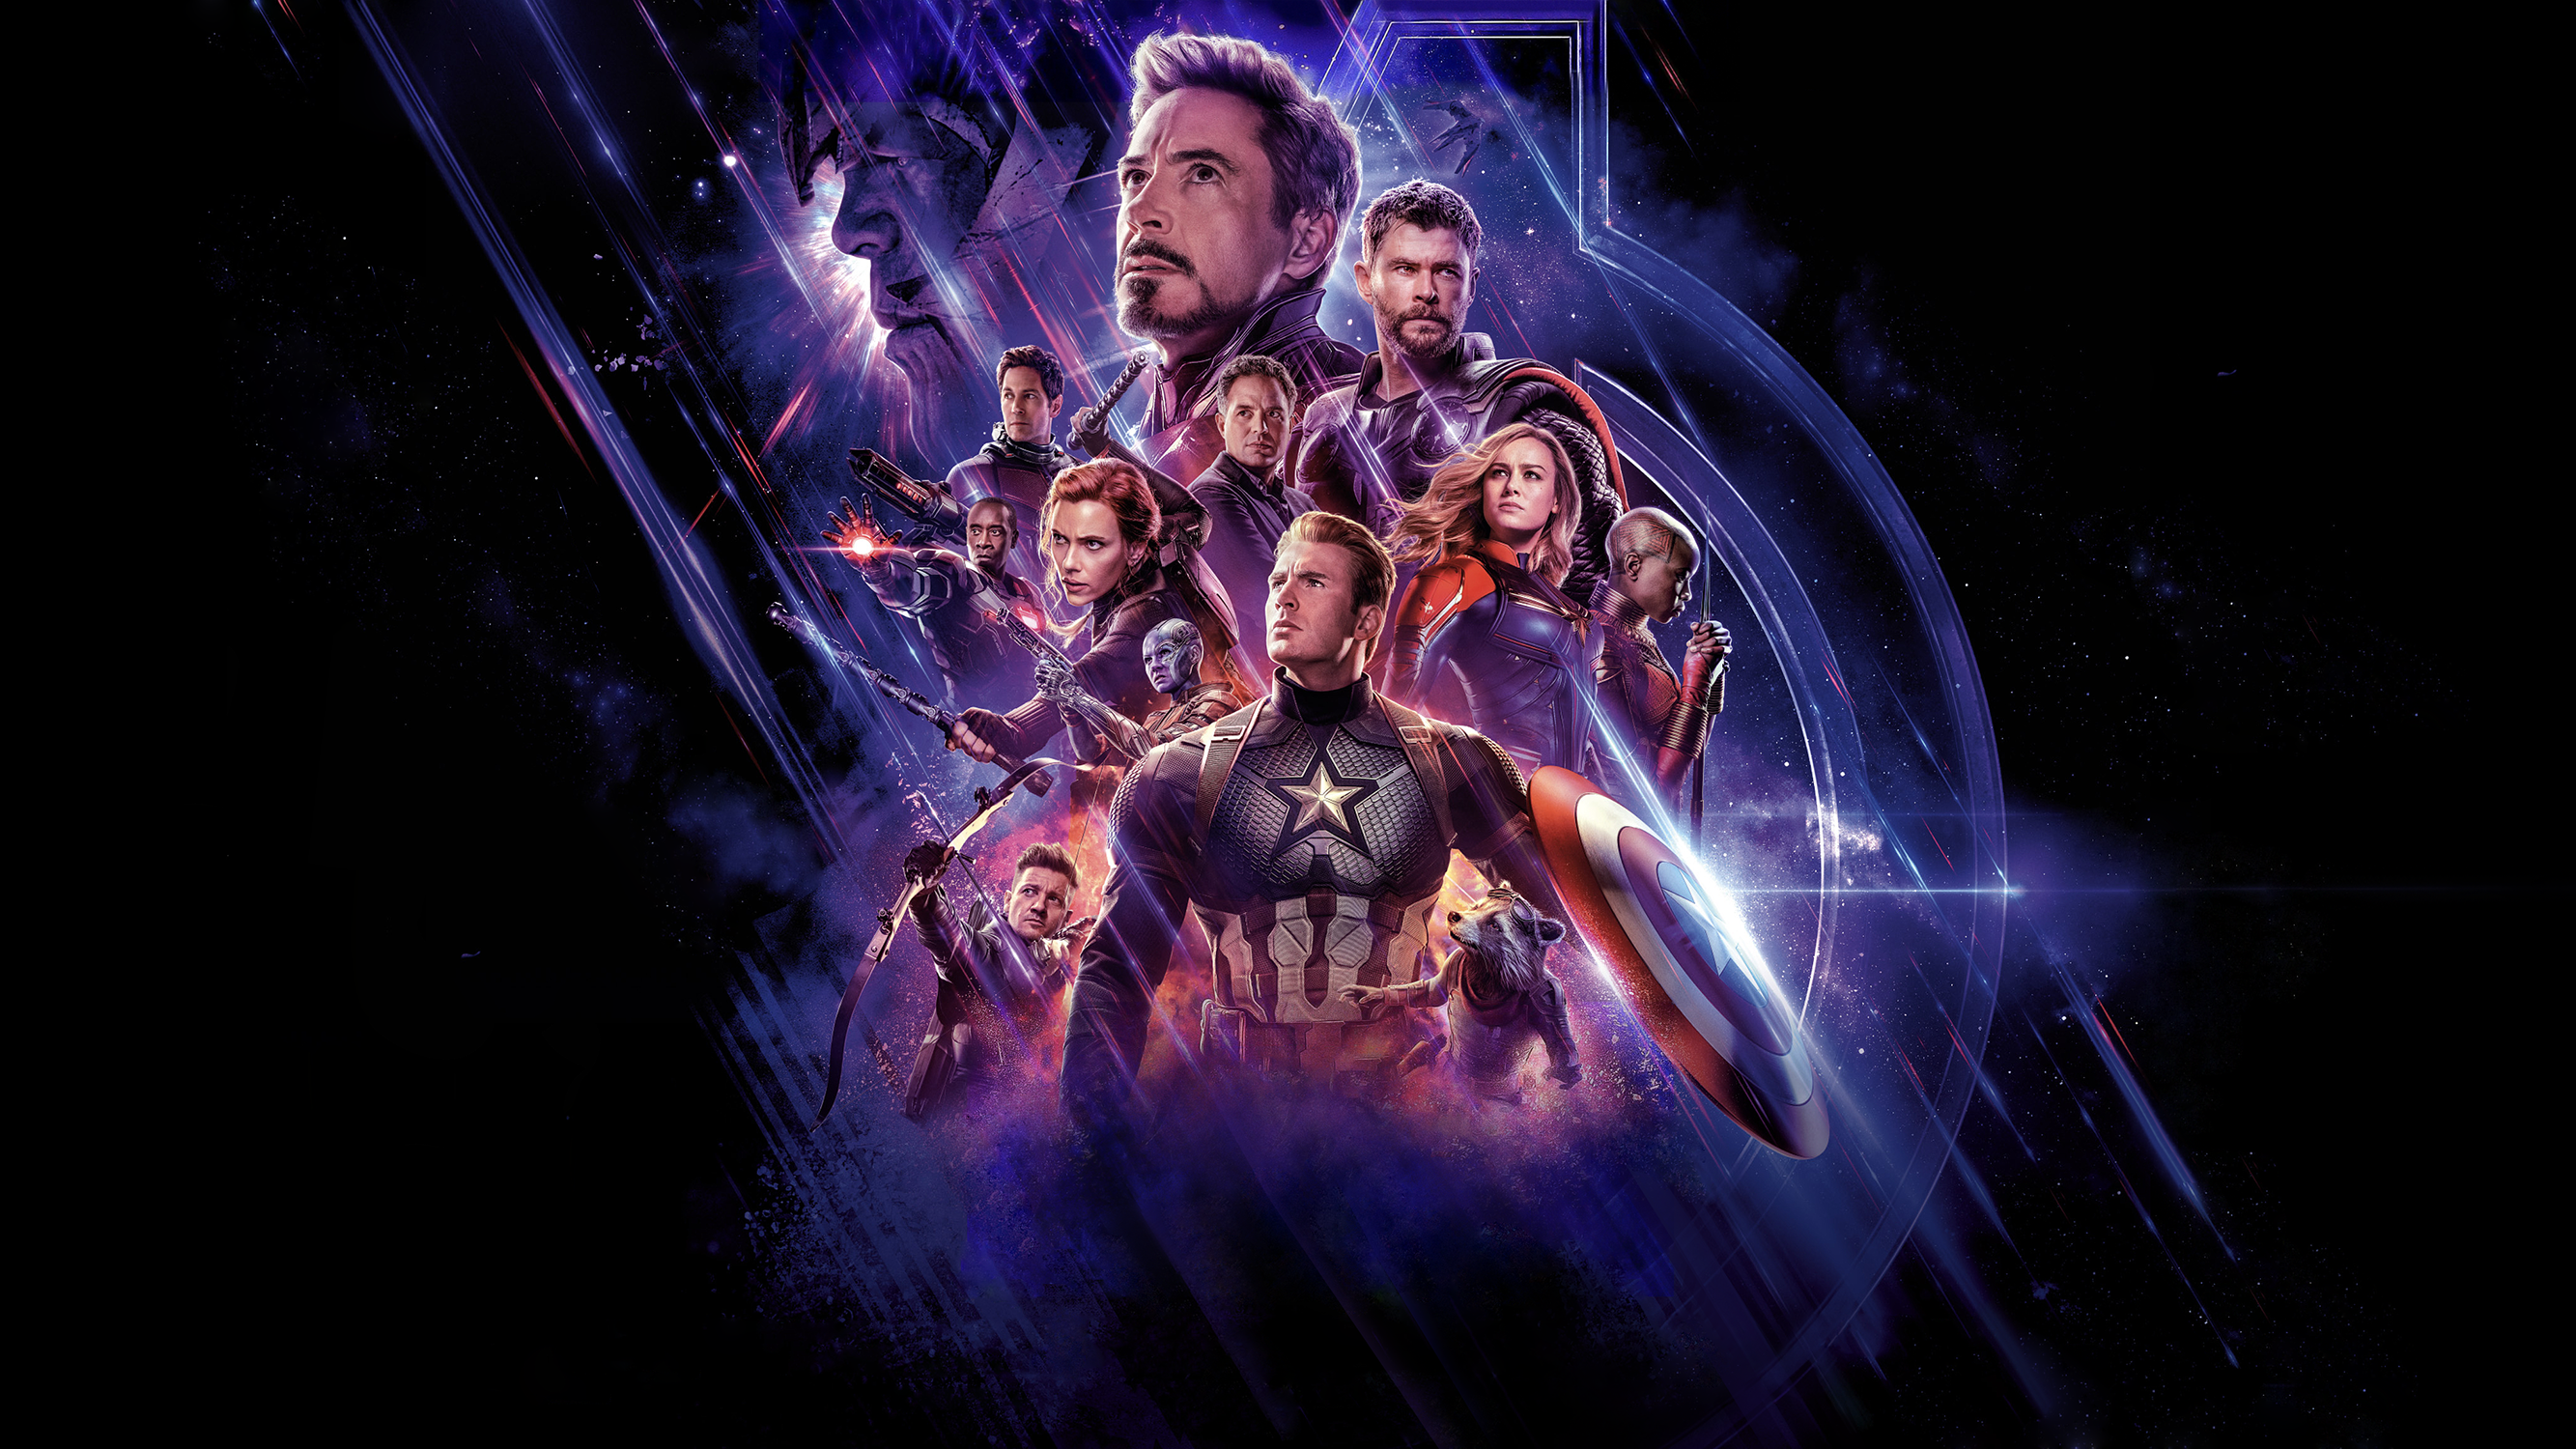 Avengers Endgame HD Wallpapers Background Images   Static 2667x1500